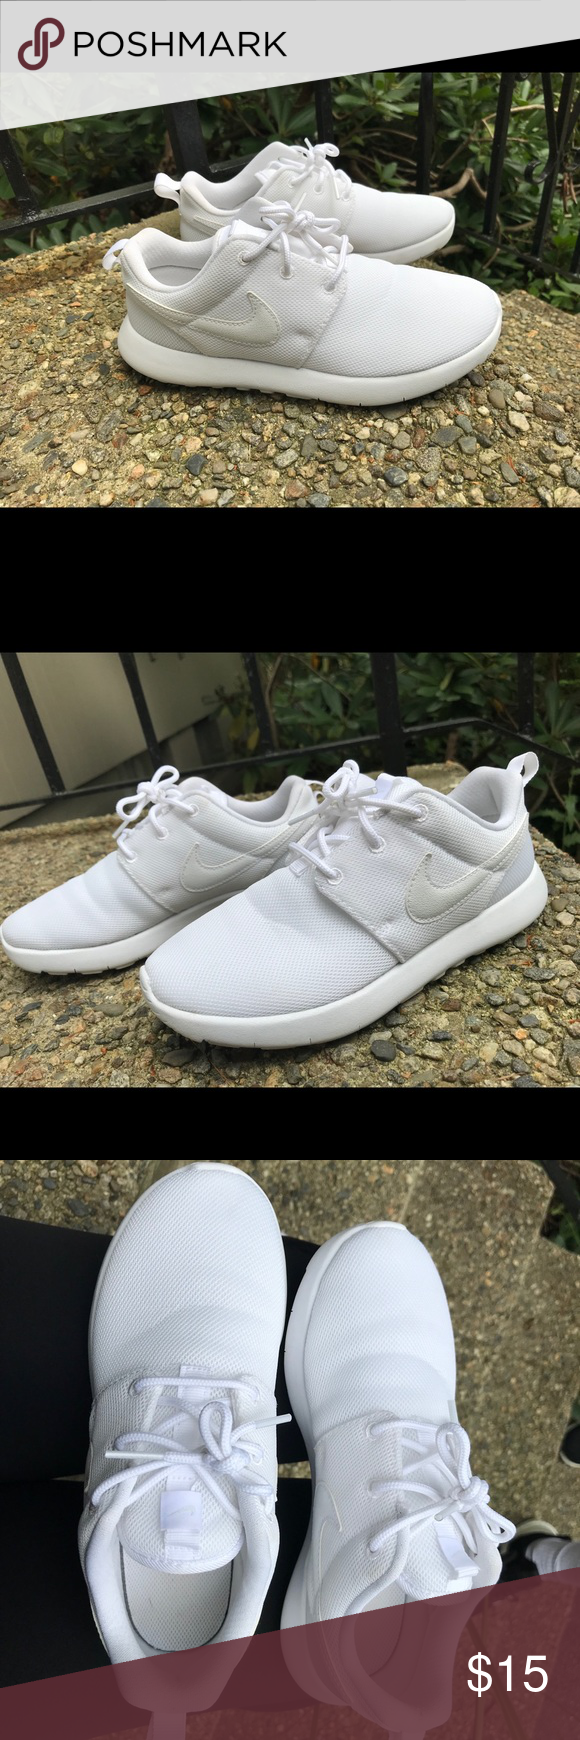 quality design 19099 69f6f Nike Roshe One Boys' Grade School They are all white roshes ...